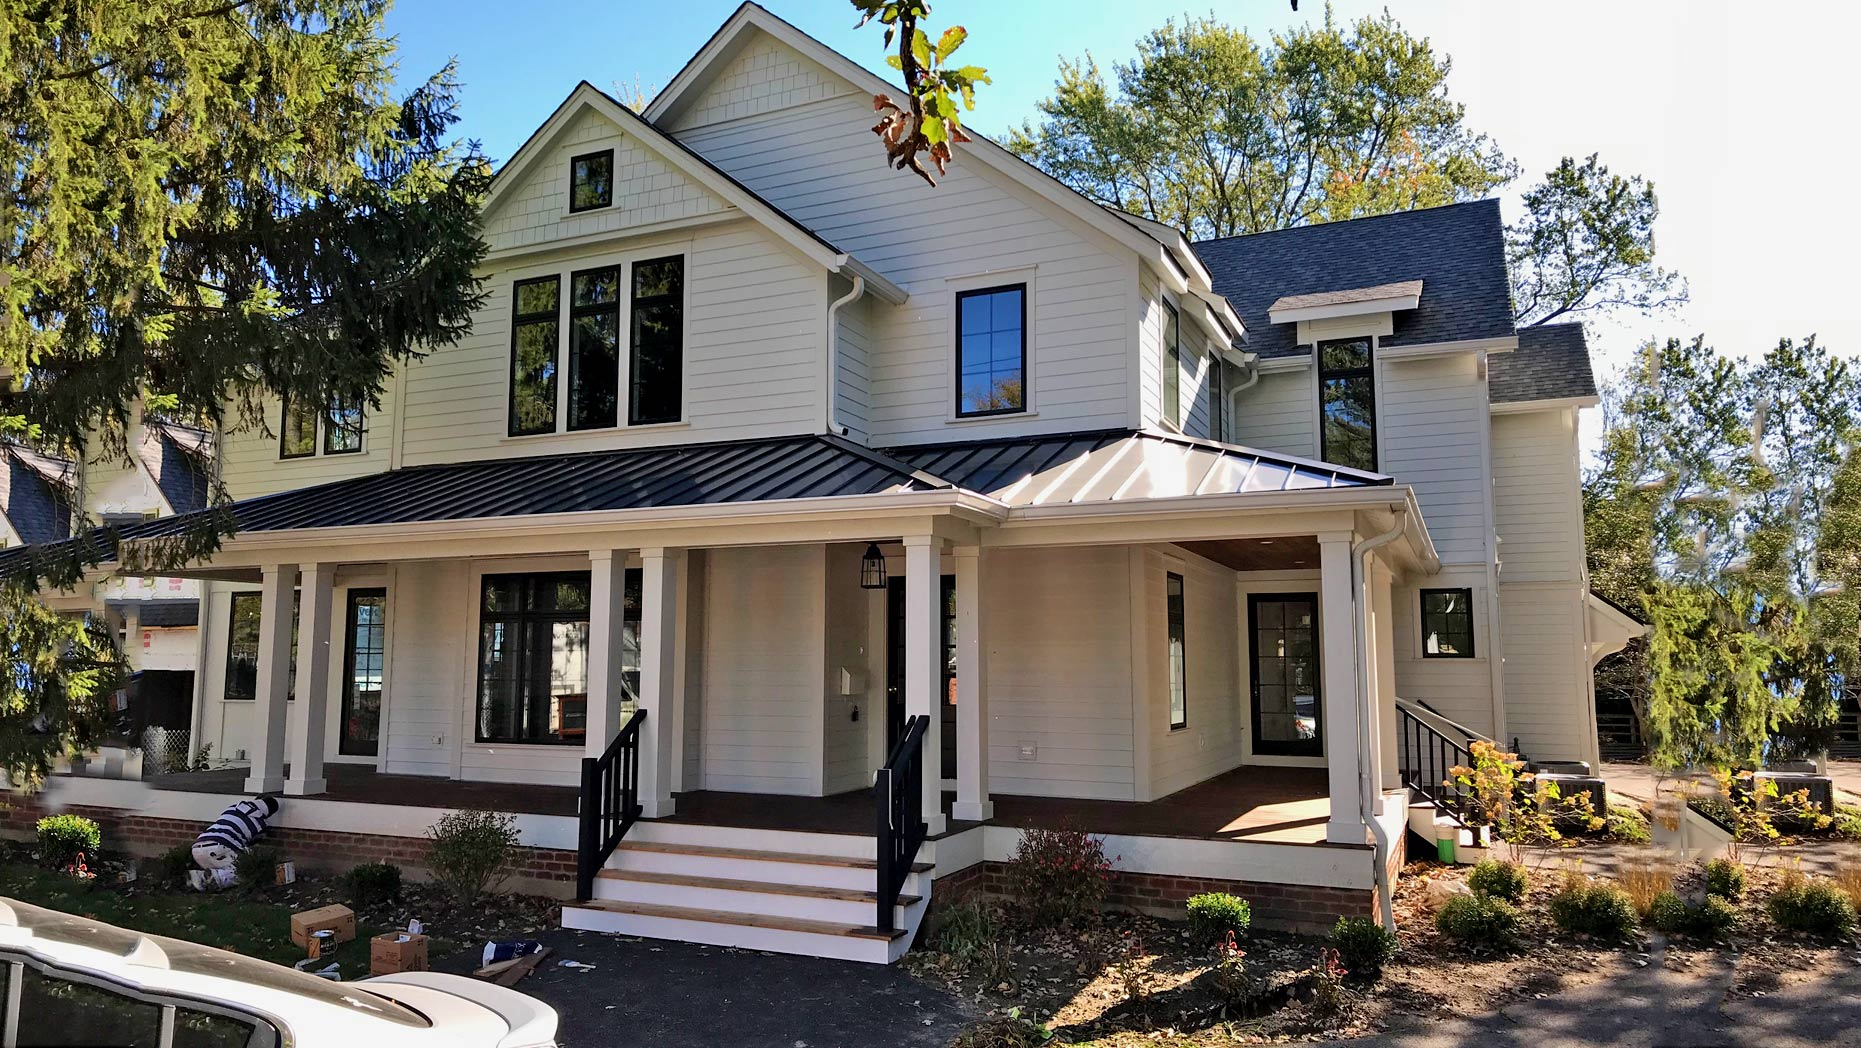 Roofing & Siding Project by A&E Roofing & Siding